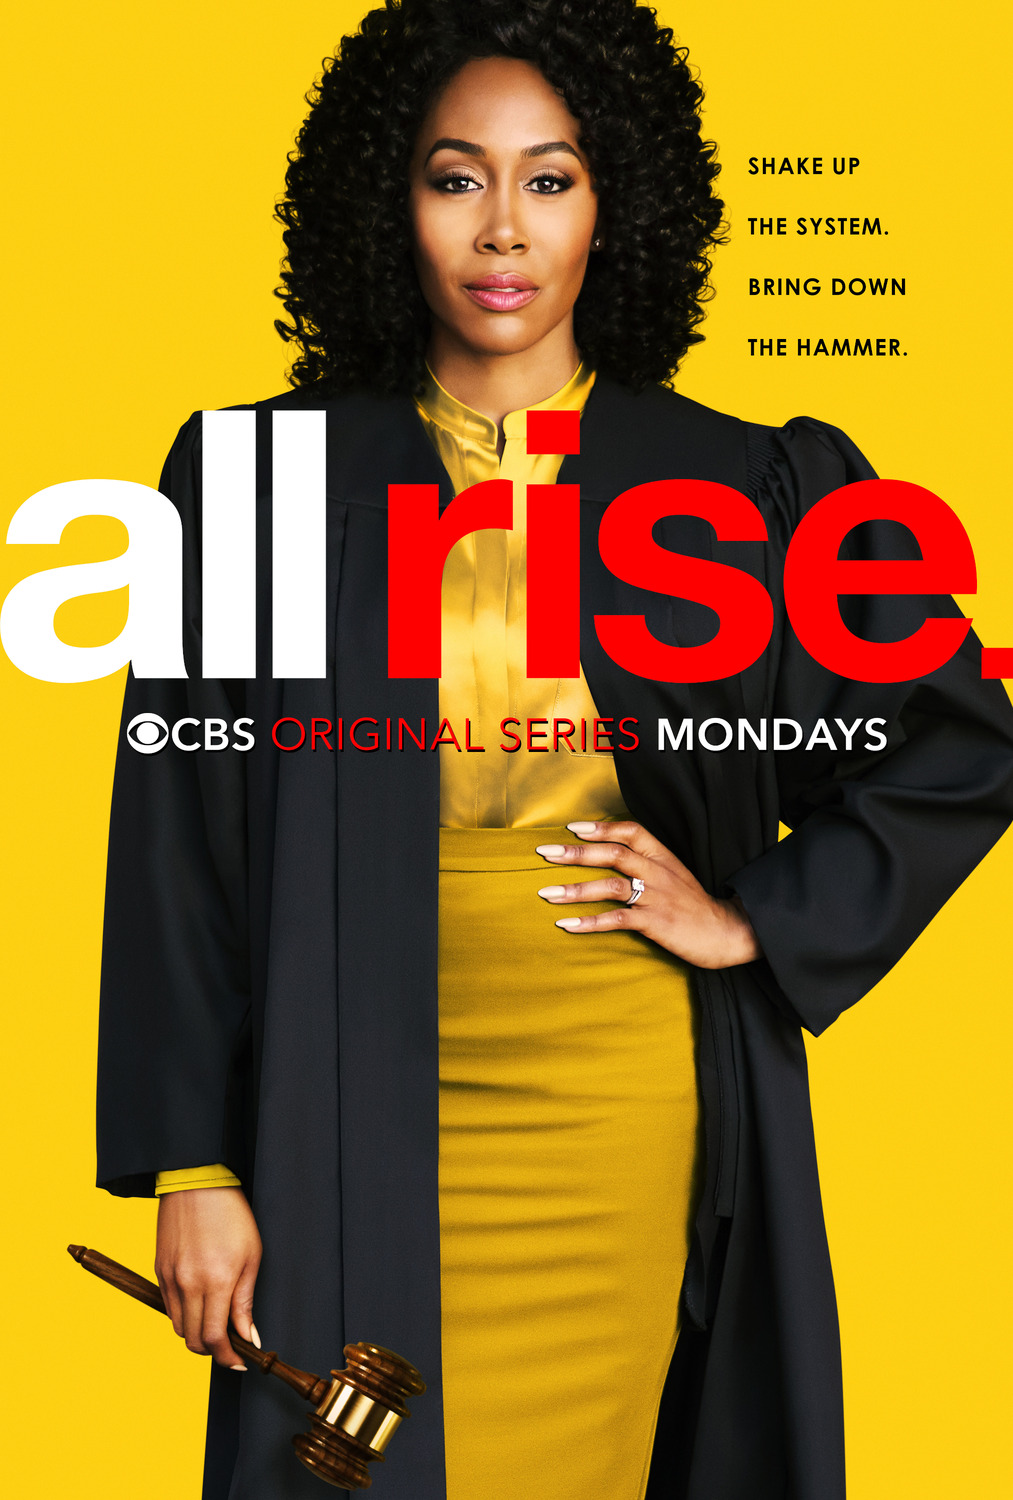 All Rise 2019 S02E01 English 720p HDTVRip ESub 230MB Download